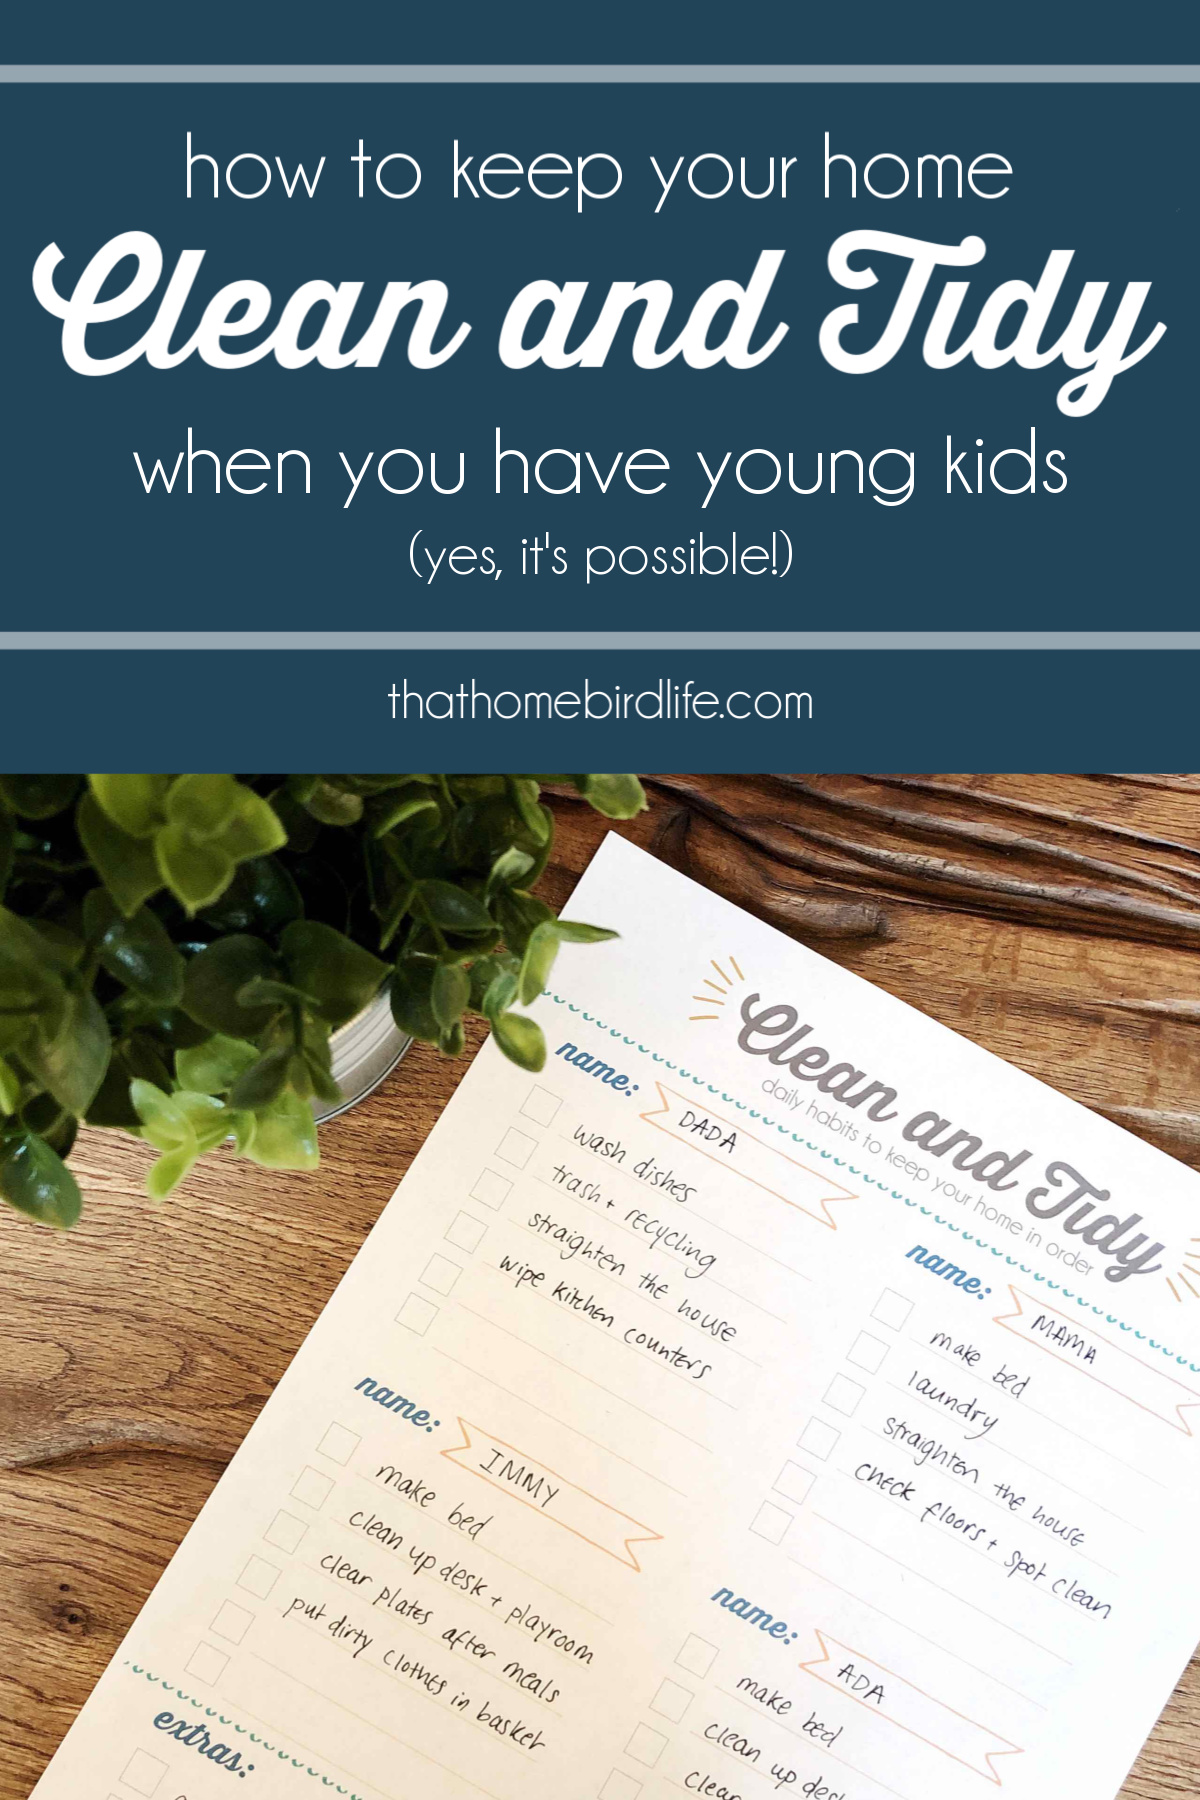 Cleaning checklist printable next to a plant with text overlay: How to Keep Your Home Clean and Tidy When You Have Young Kids